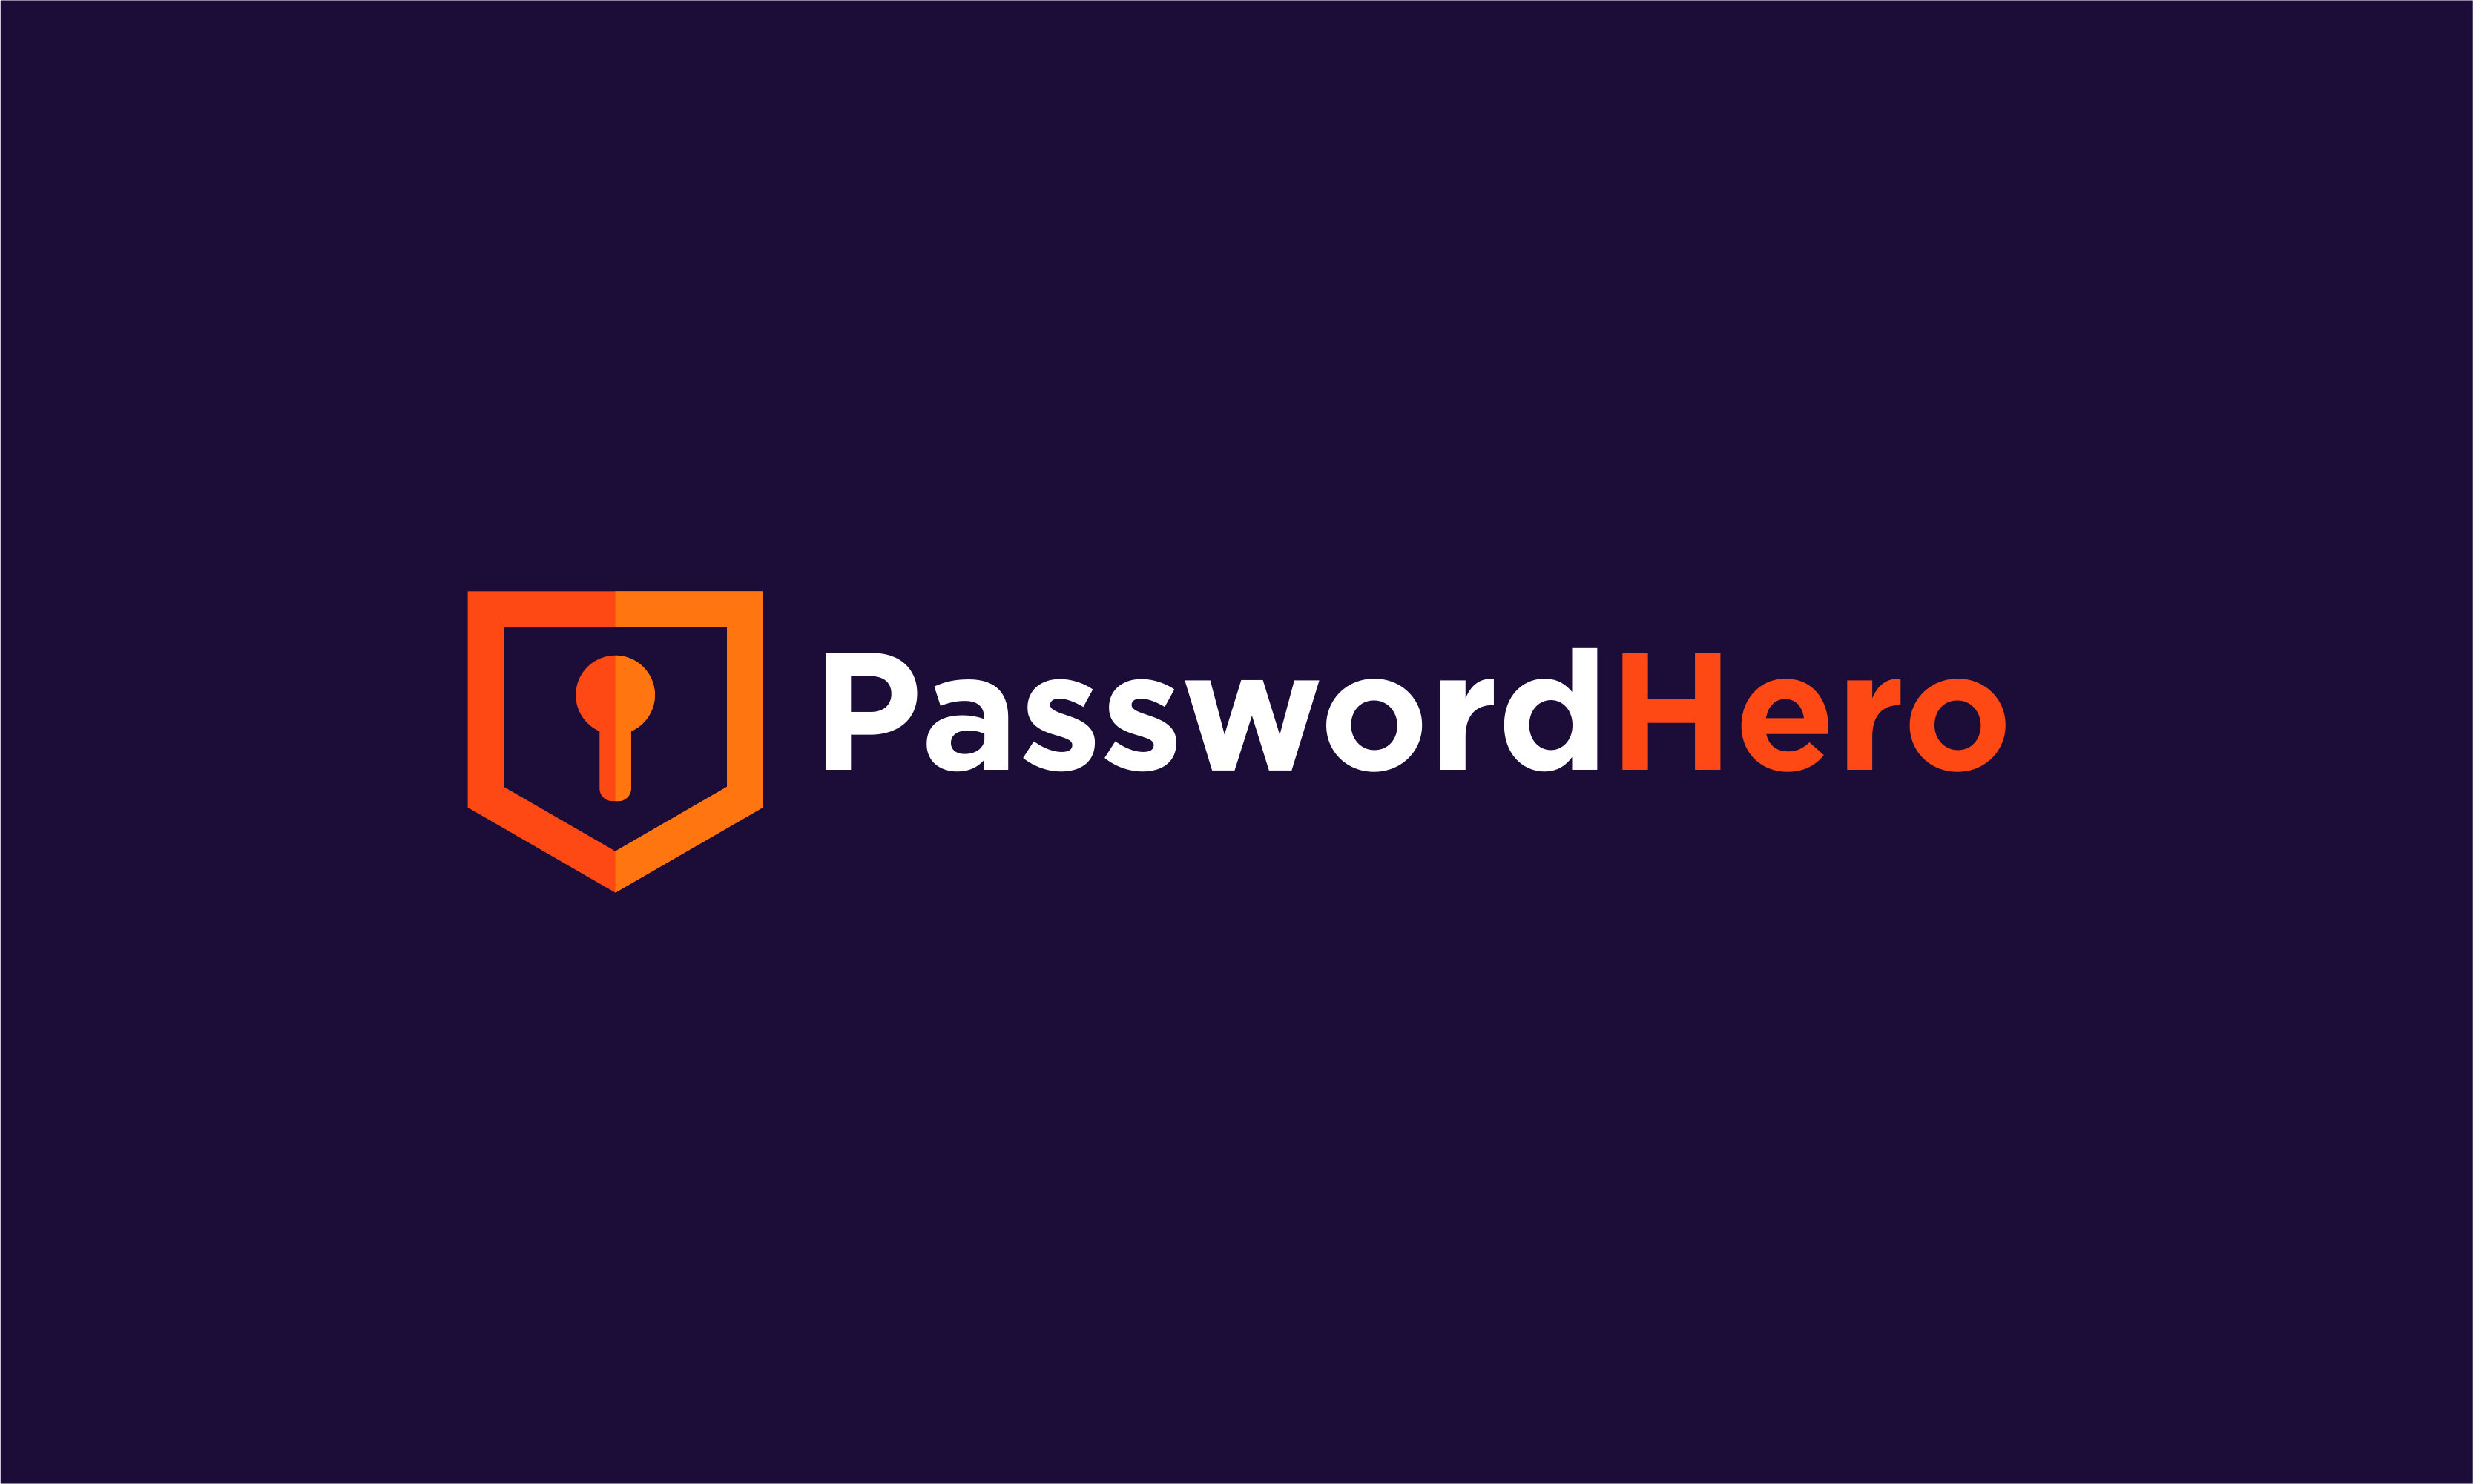 Passwordhero